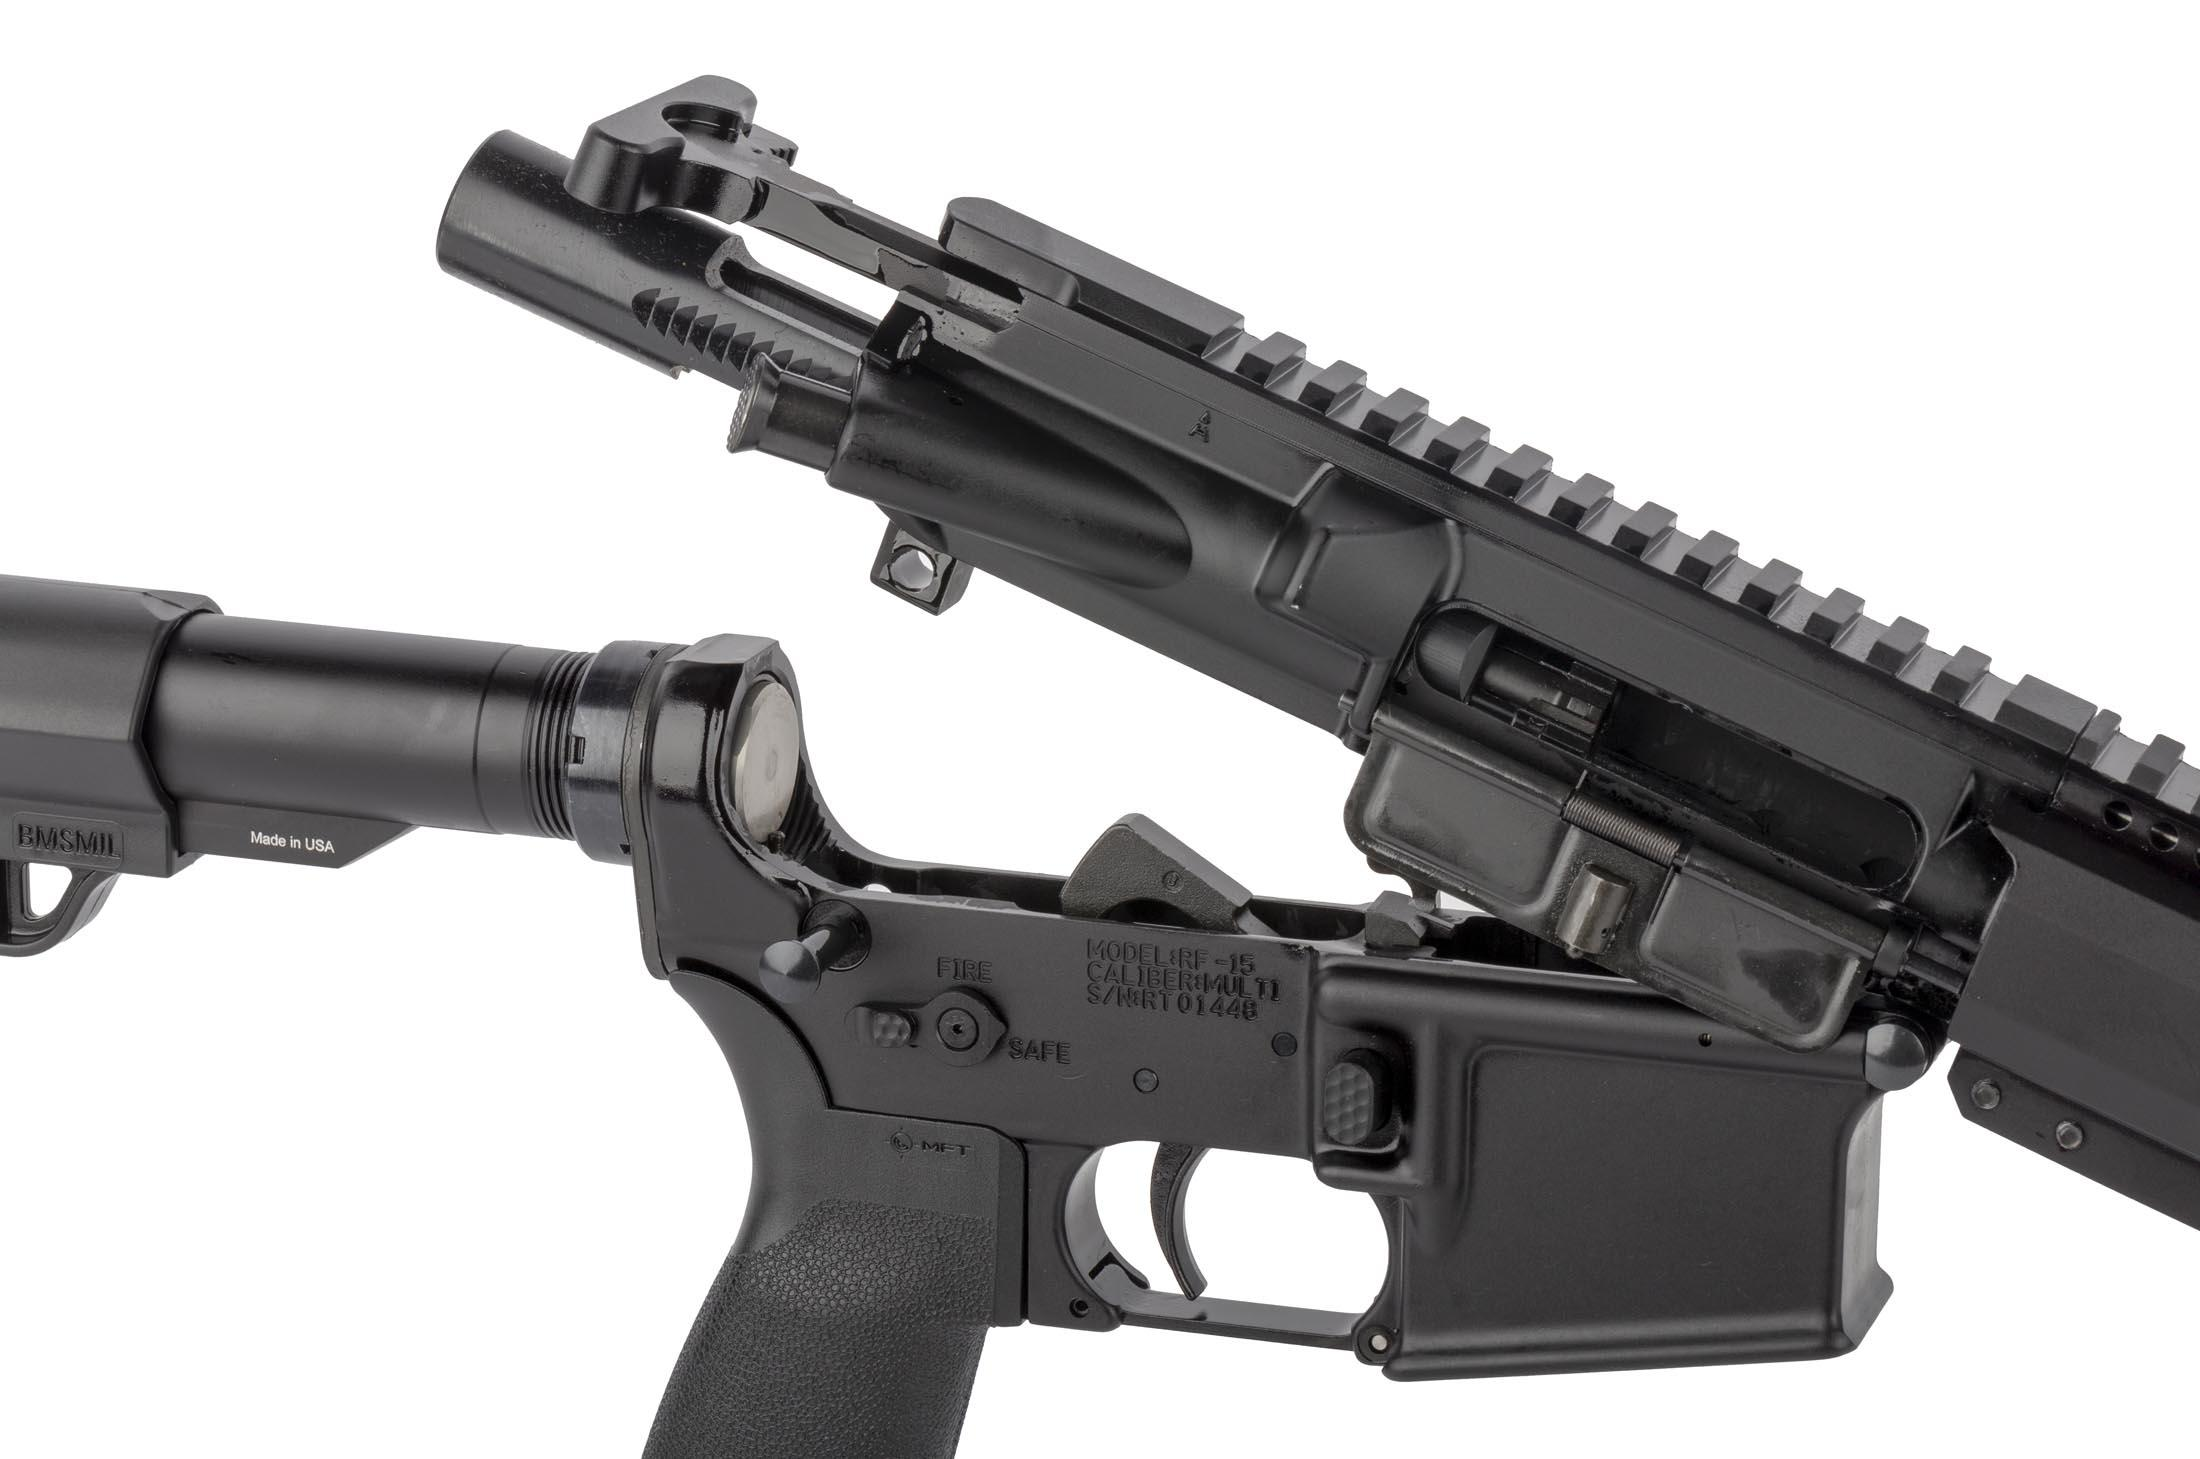 Radical Firearms complete 16in AR-15 in .223 Wylde AR 15 includes a MIL-SPEC trigger, carbine buffer, M16 BCG and standard charging handle